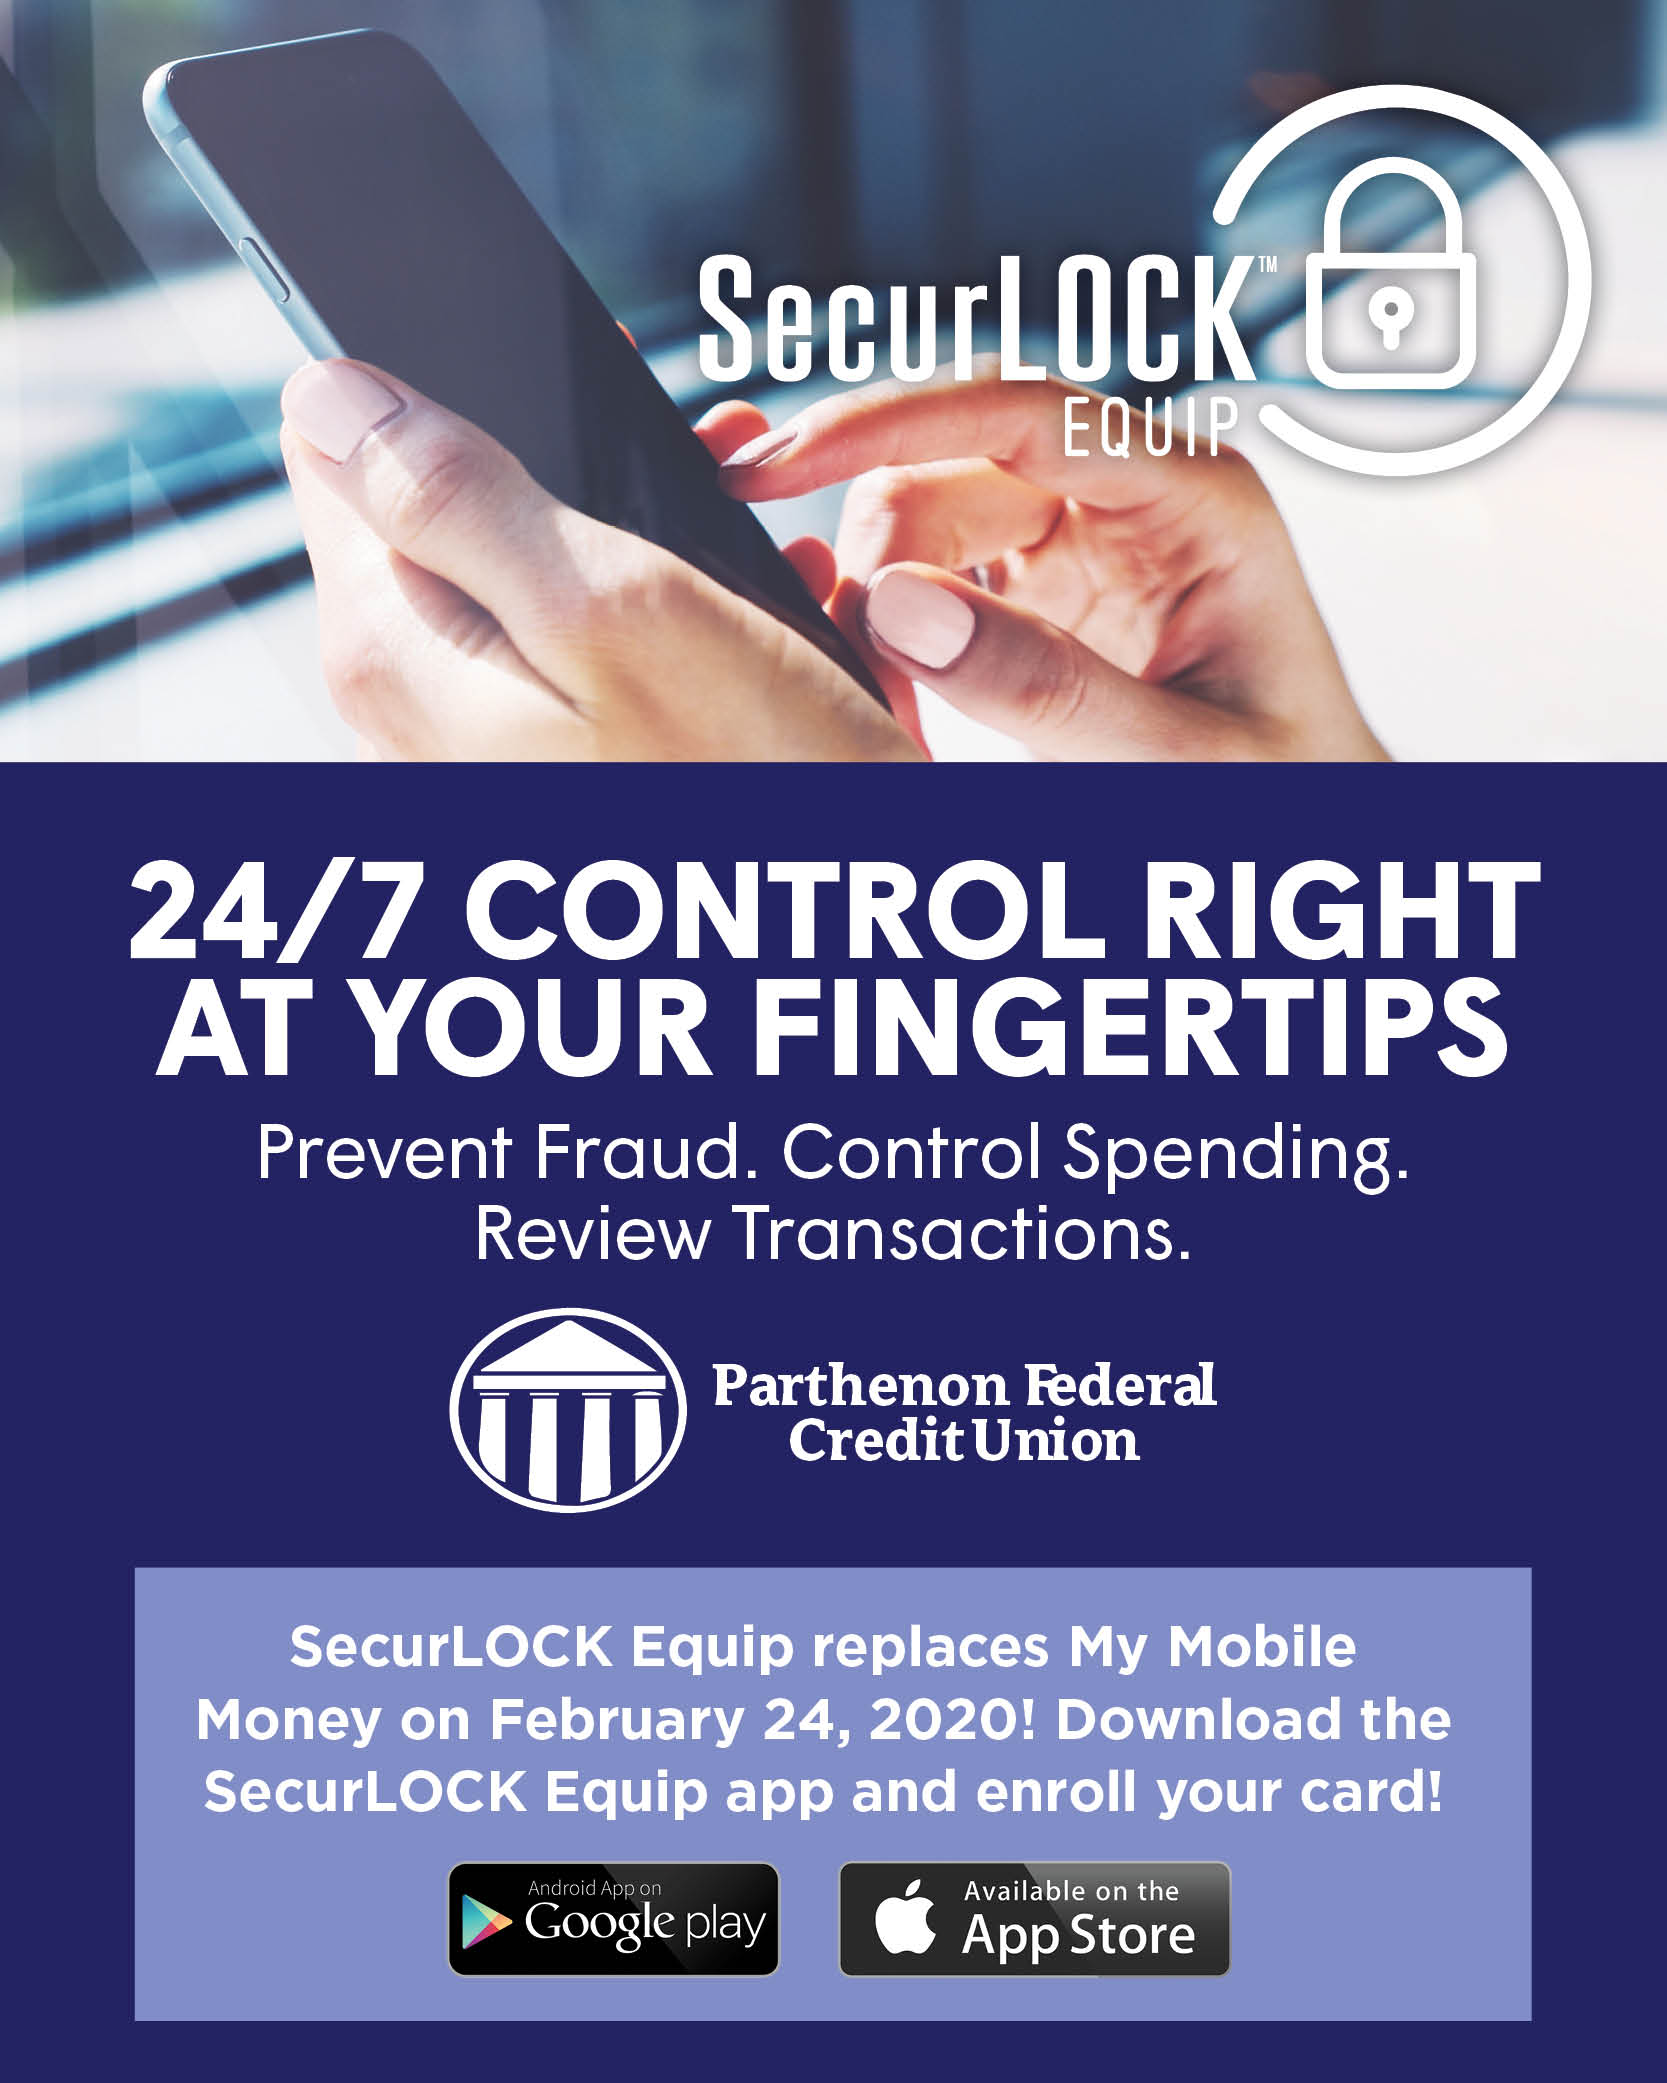 SecurLOCK Equip.  24/7 control at your fingertips.  Replaces My Mobile Money on February 24, 2020!  Download the SecurLOCK Equip app and enroll your card!